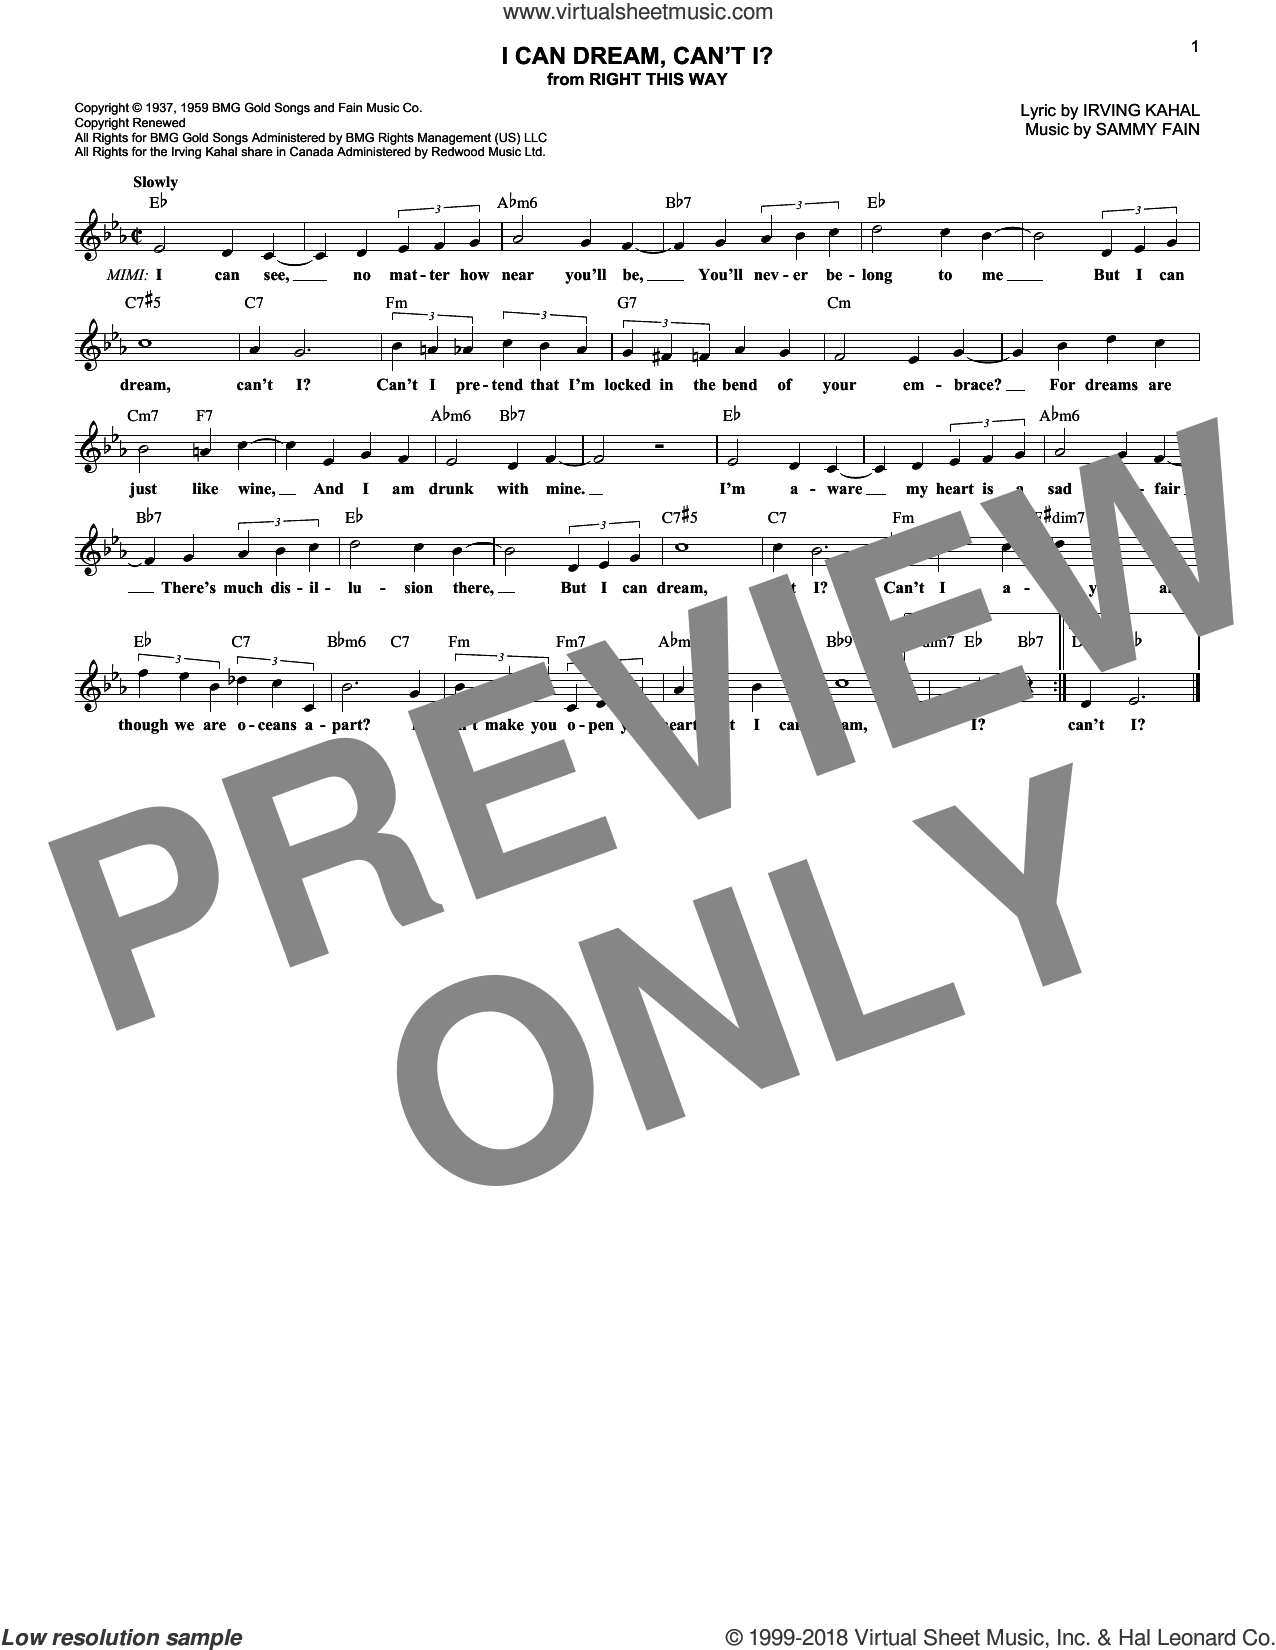 I Can Dream, Can't I? (from Right This Way) sheet music for voice and other instruments (fake book) by The Andrews Sisters, Irving Kahal and Sammy Fain, intermediate skill level